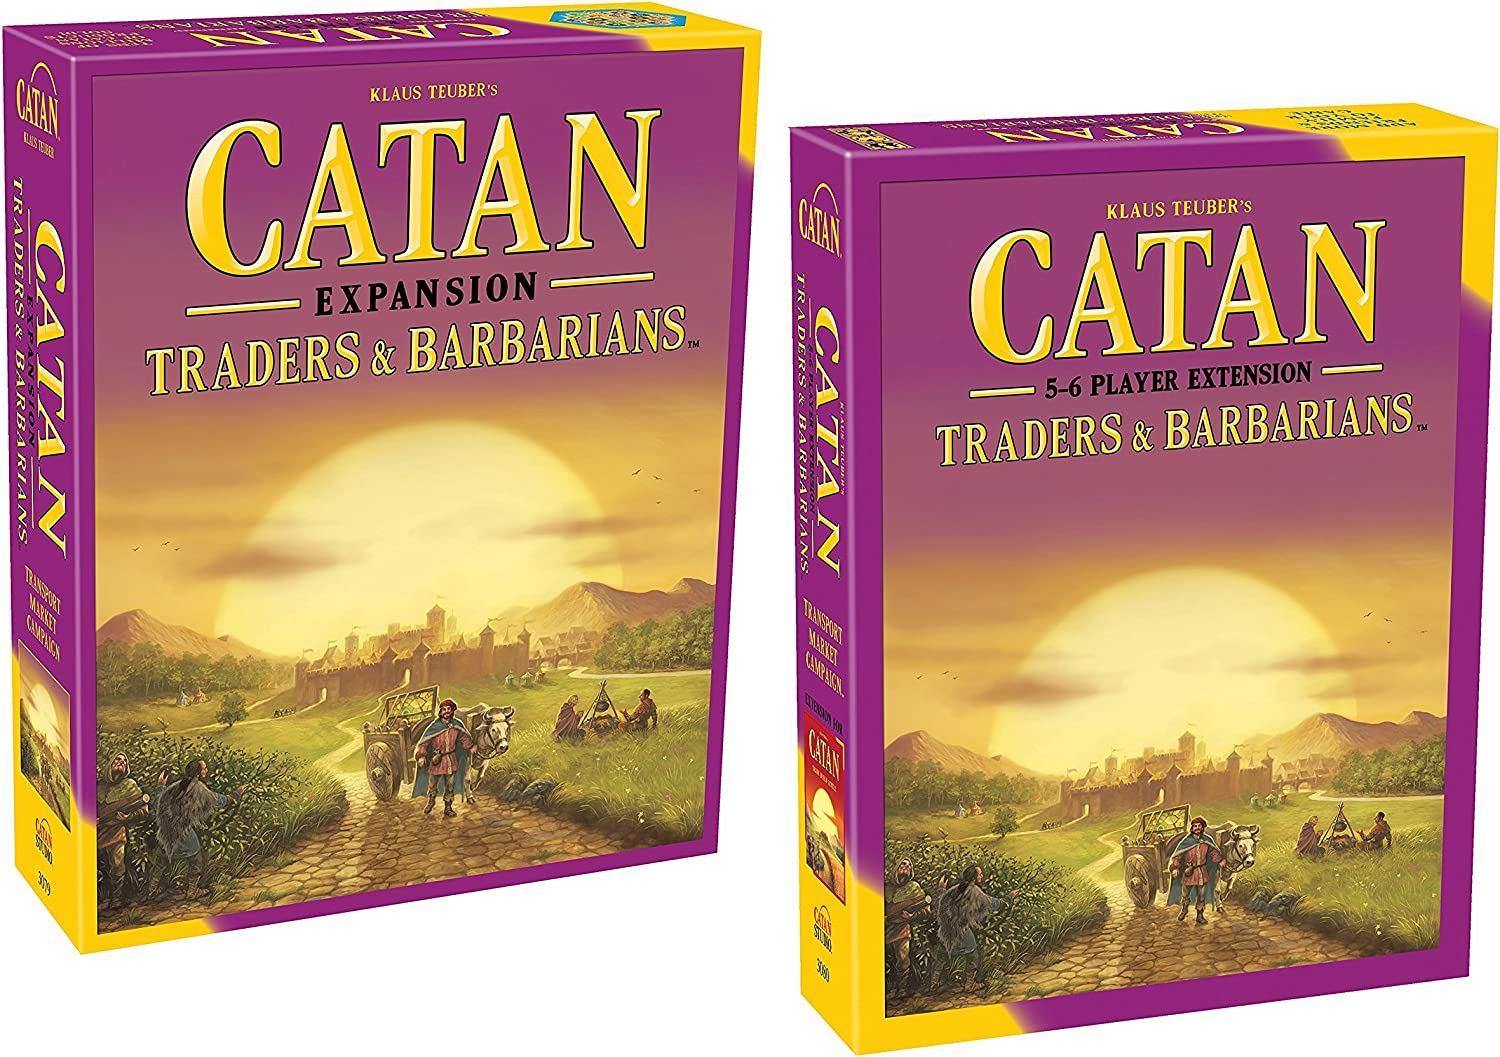 Catan: Traders & Barbarians (5ª edición) con Catan: Traders & Barbarians 5-6 Player Extension 5th Edition: Amazon.es: Juguetes y juegos